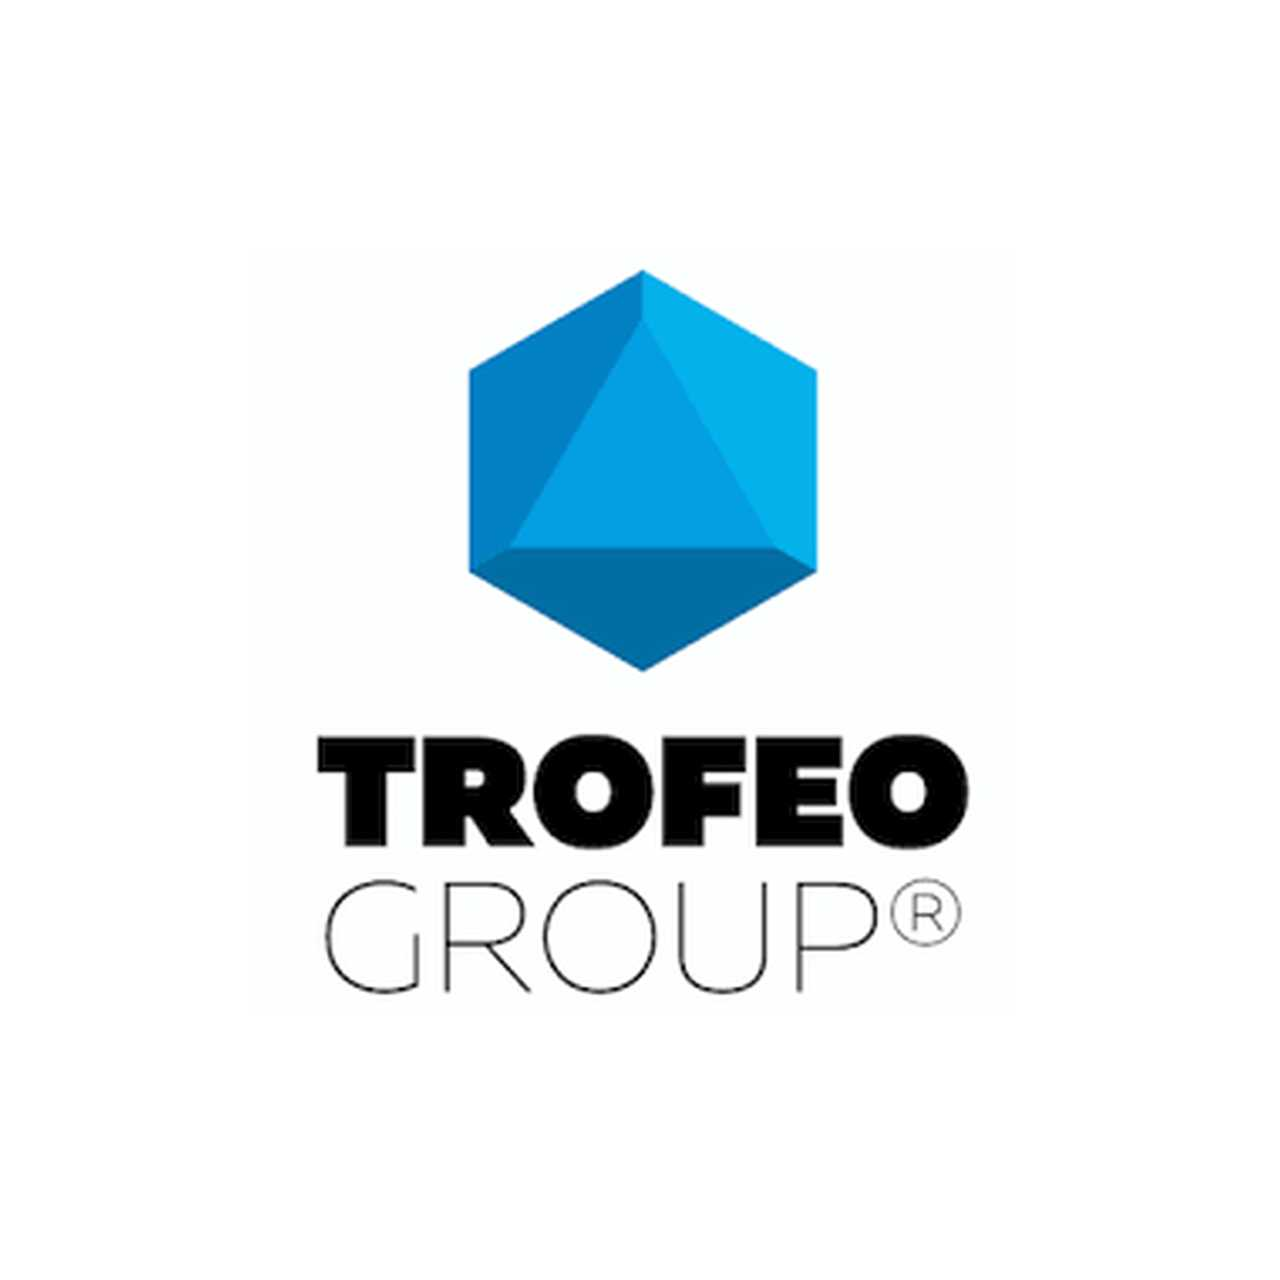 Trofeo Group